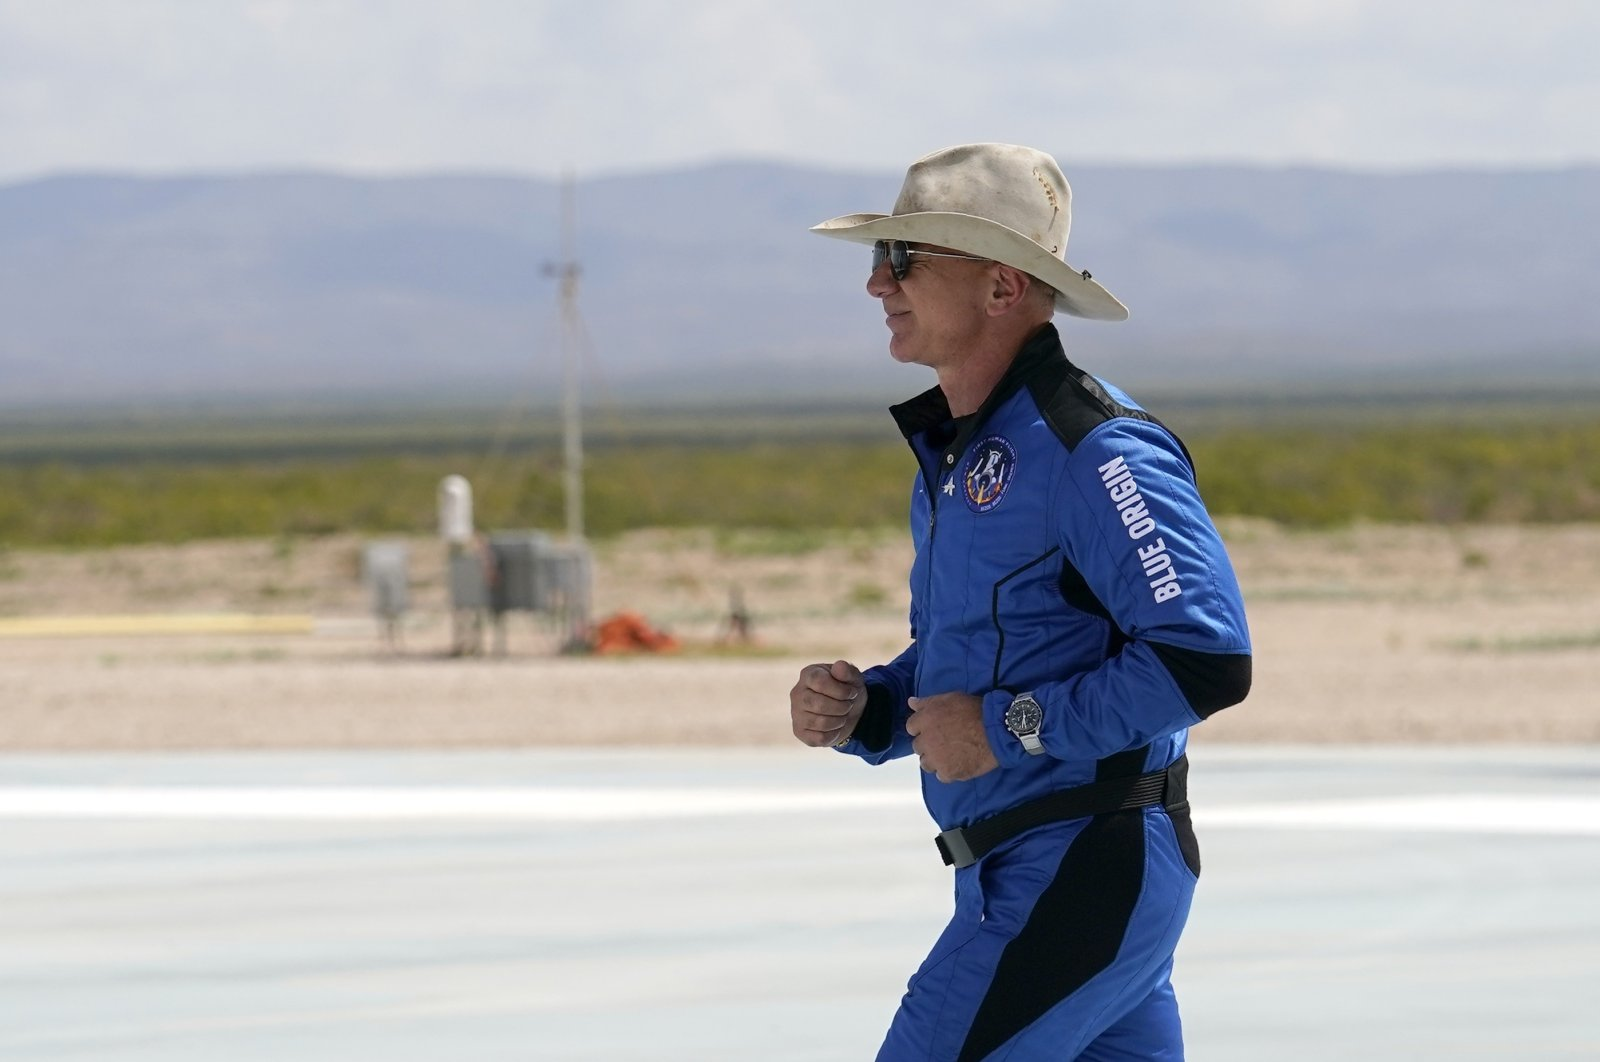 Jeff Bezos, the founder of Amazon and space tourism company Blue Origin, jogs onto Blue Origin's New Shepard rocket landing pad to pose for photos at the spaceport near Van Horn, Texas, on July 20, 2021. (AP Photo)